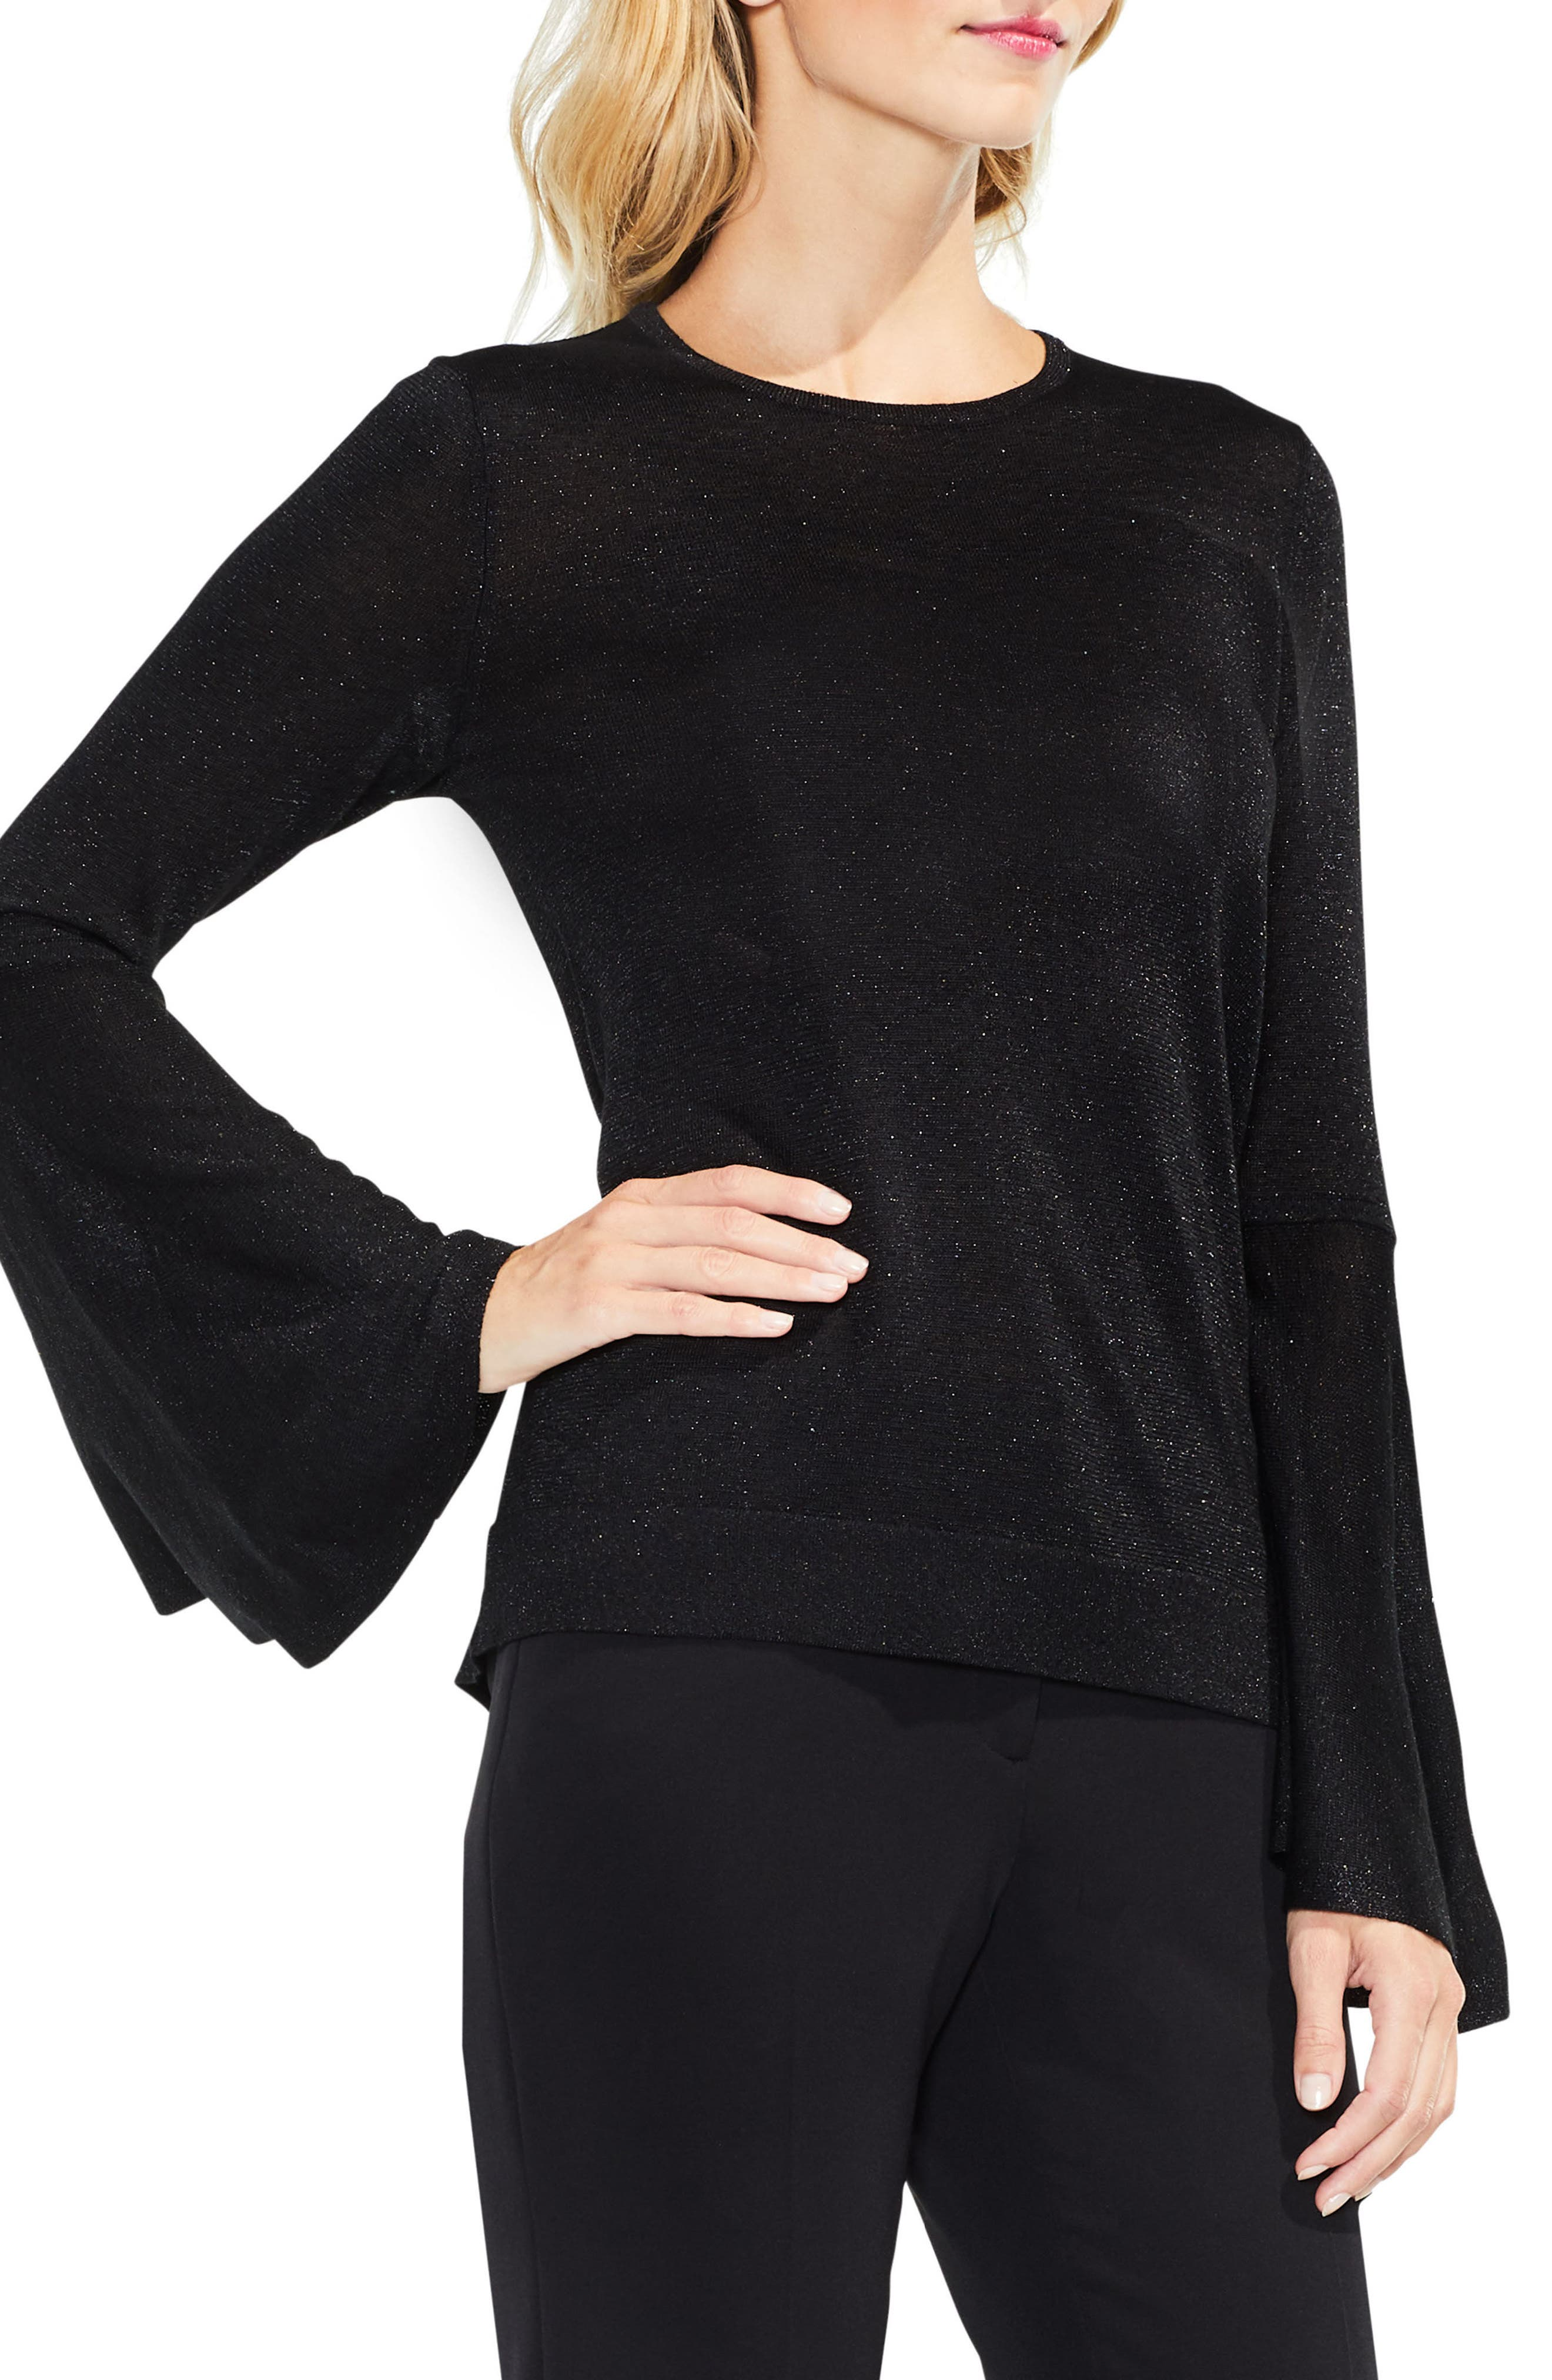 Bell Sleeve Sweater,                             Main thumbnail 1, color,                             006